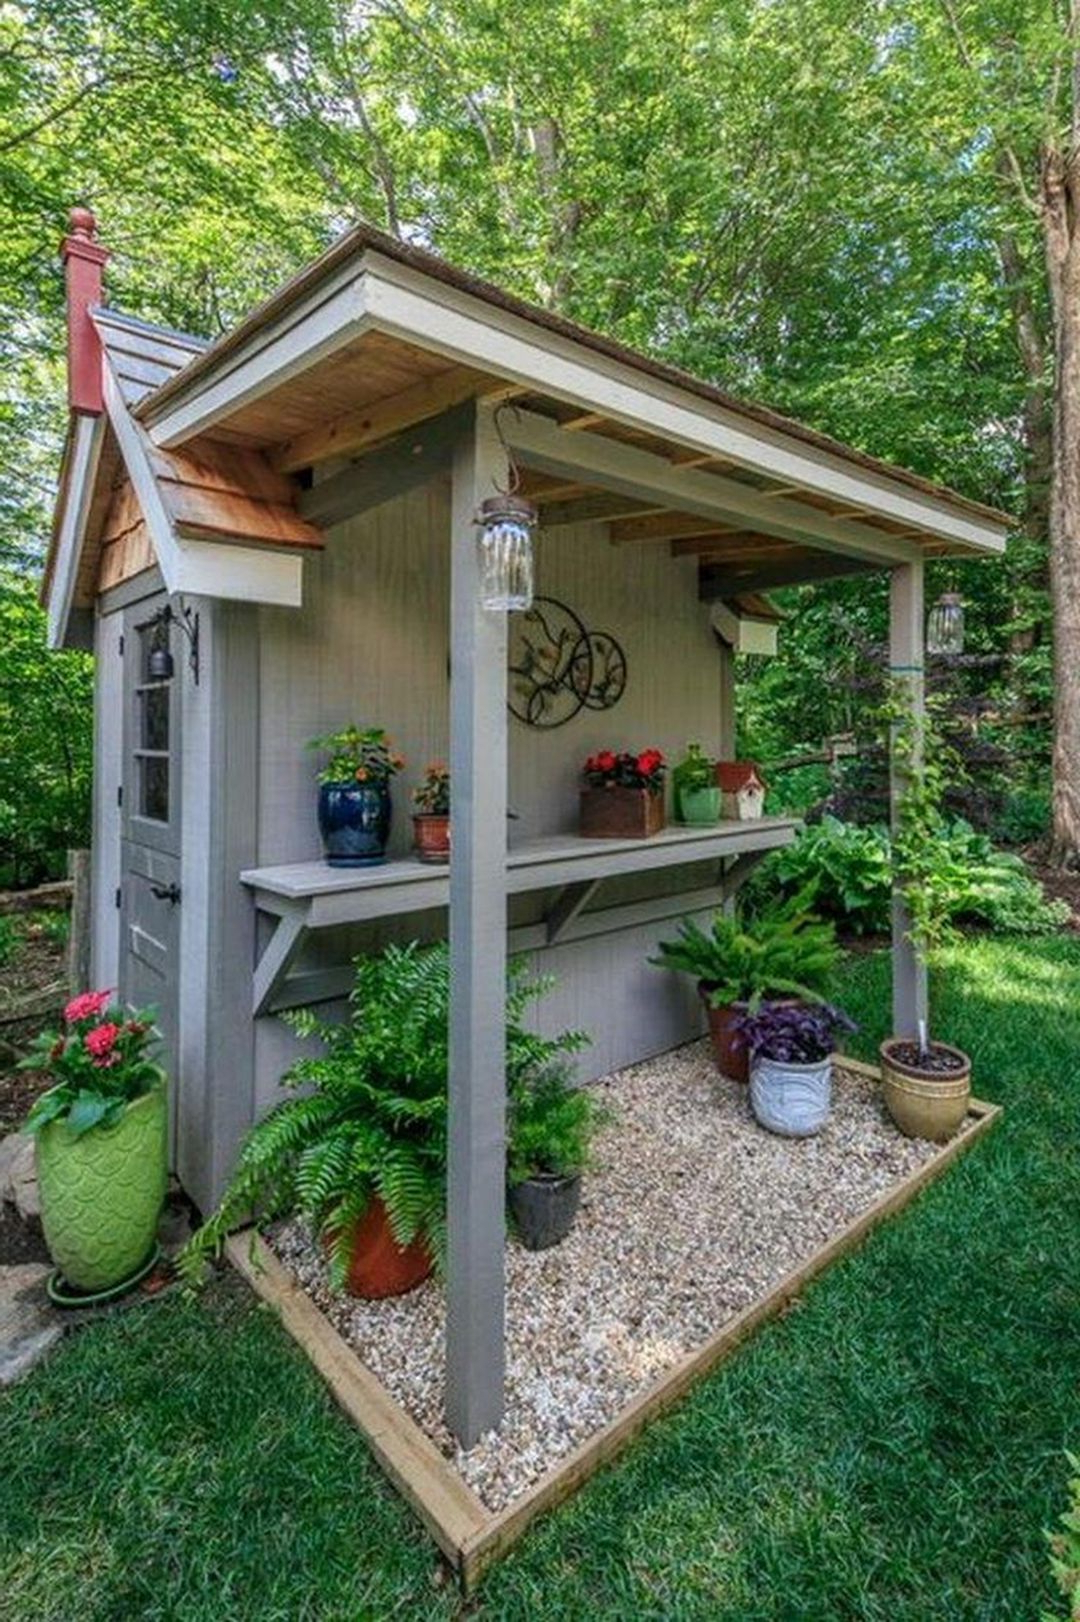 15 Affordable Diy Garden Ideas That Make Your Home Yard